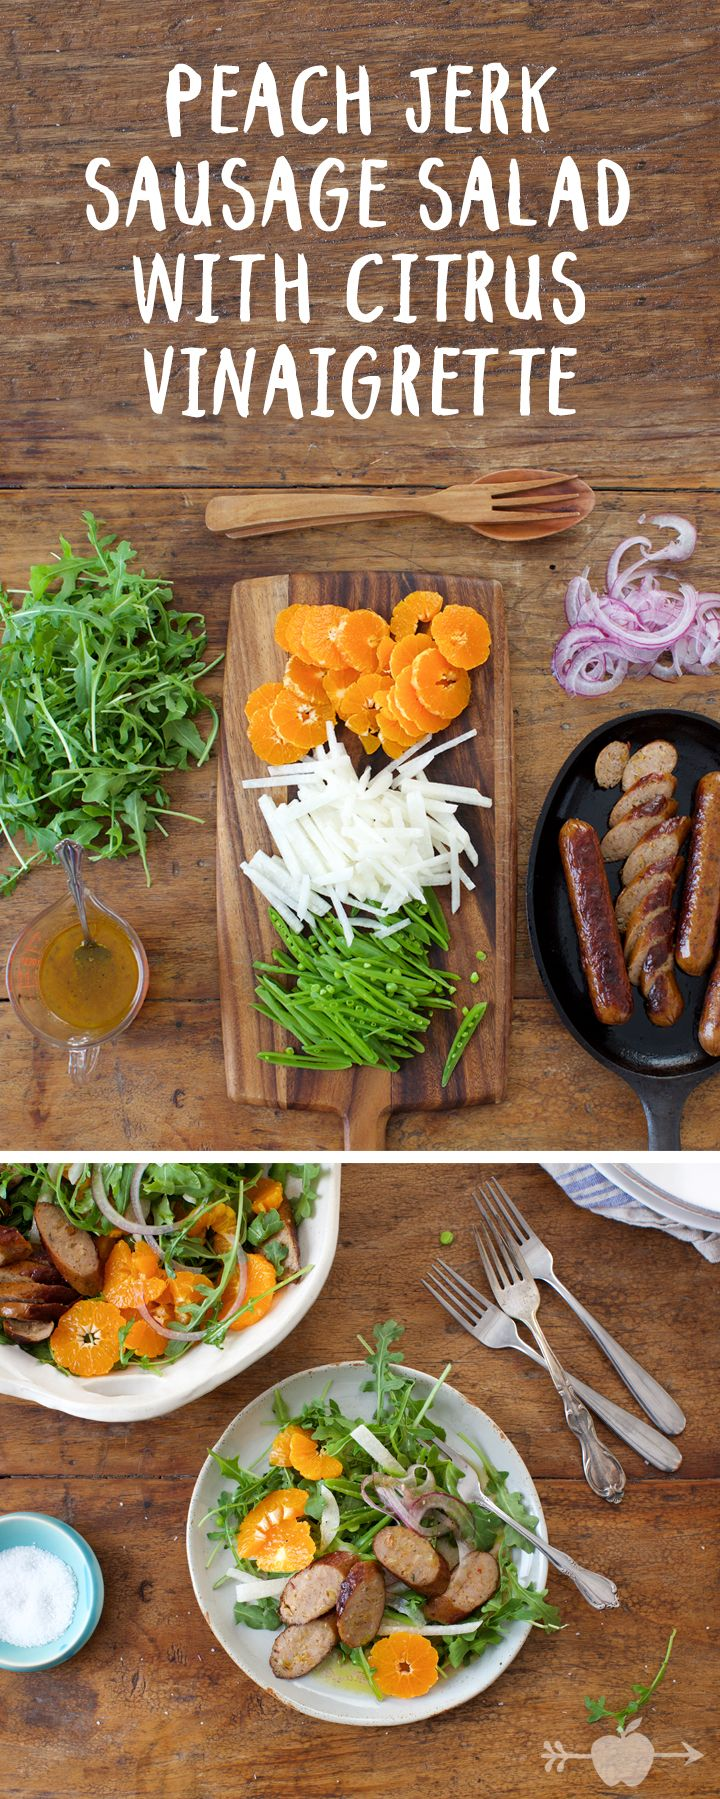 Our peach jerk chicken sausages add a jolt of meaty heat to this juicy, crunchy, deliciously filling salad.